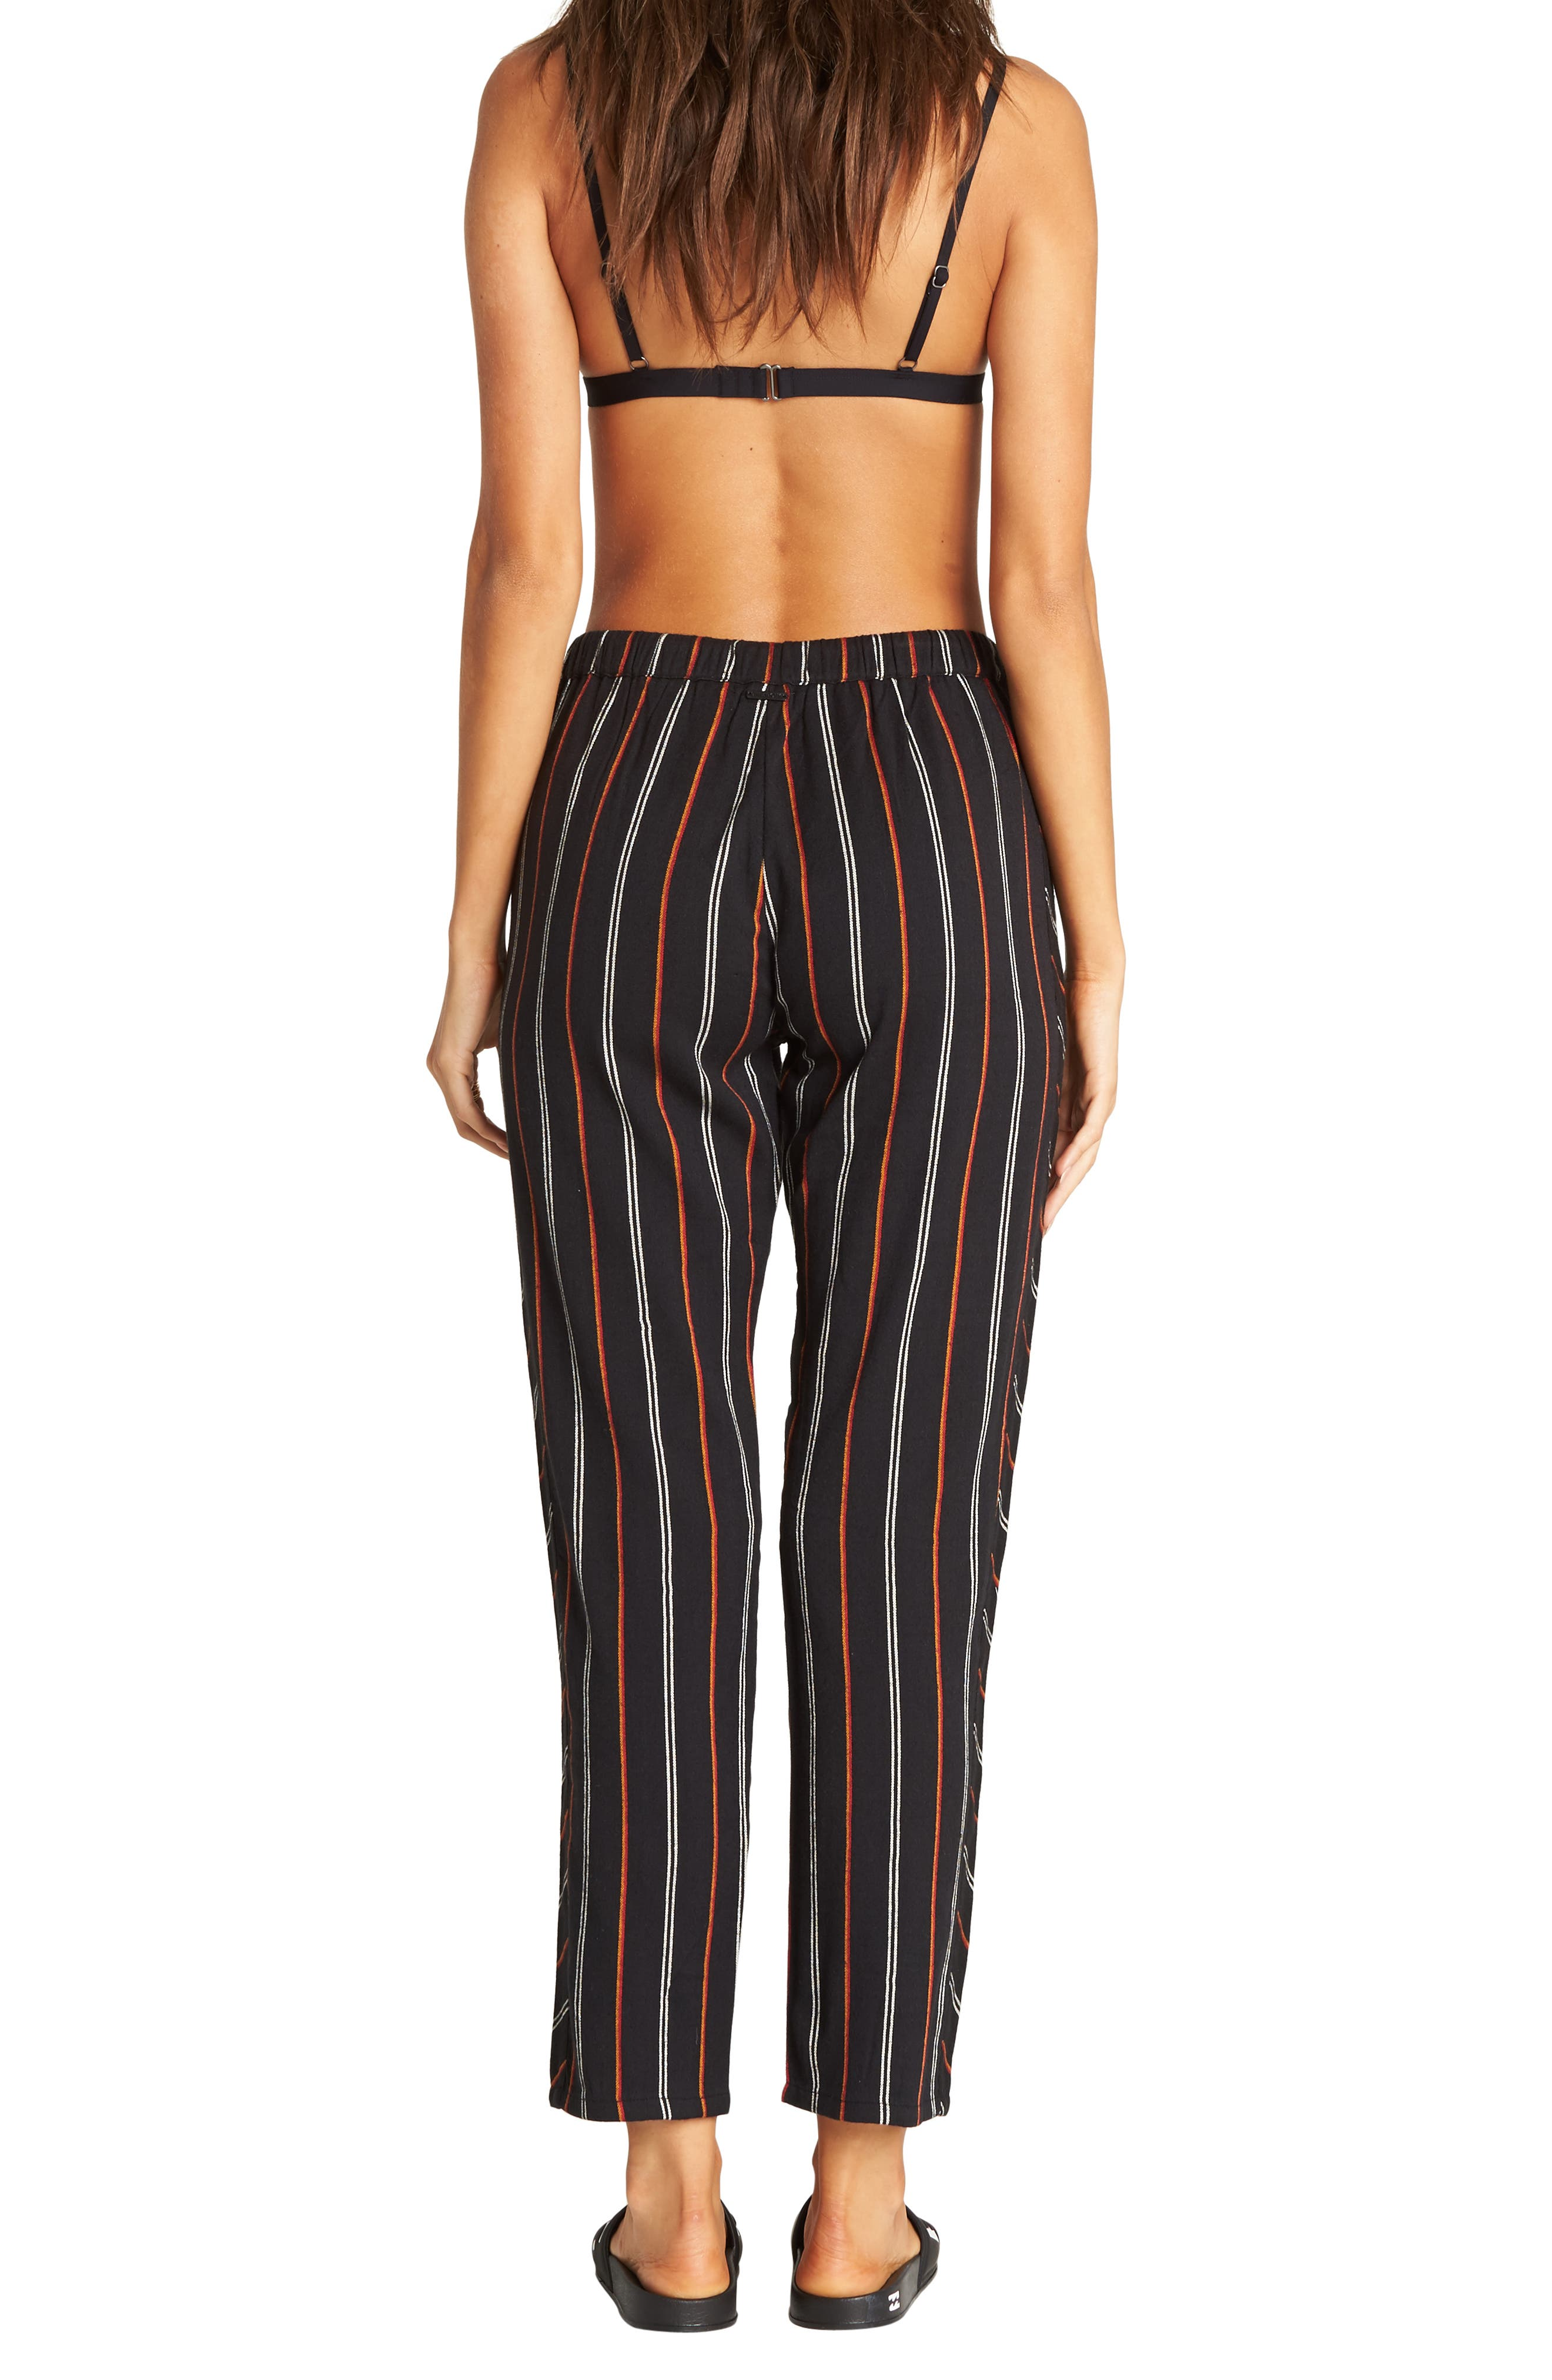 So Pro Pinstripe Pants,                             Alternate thumbnail 2, color,                             BLACK